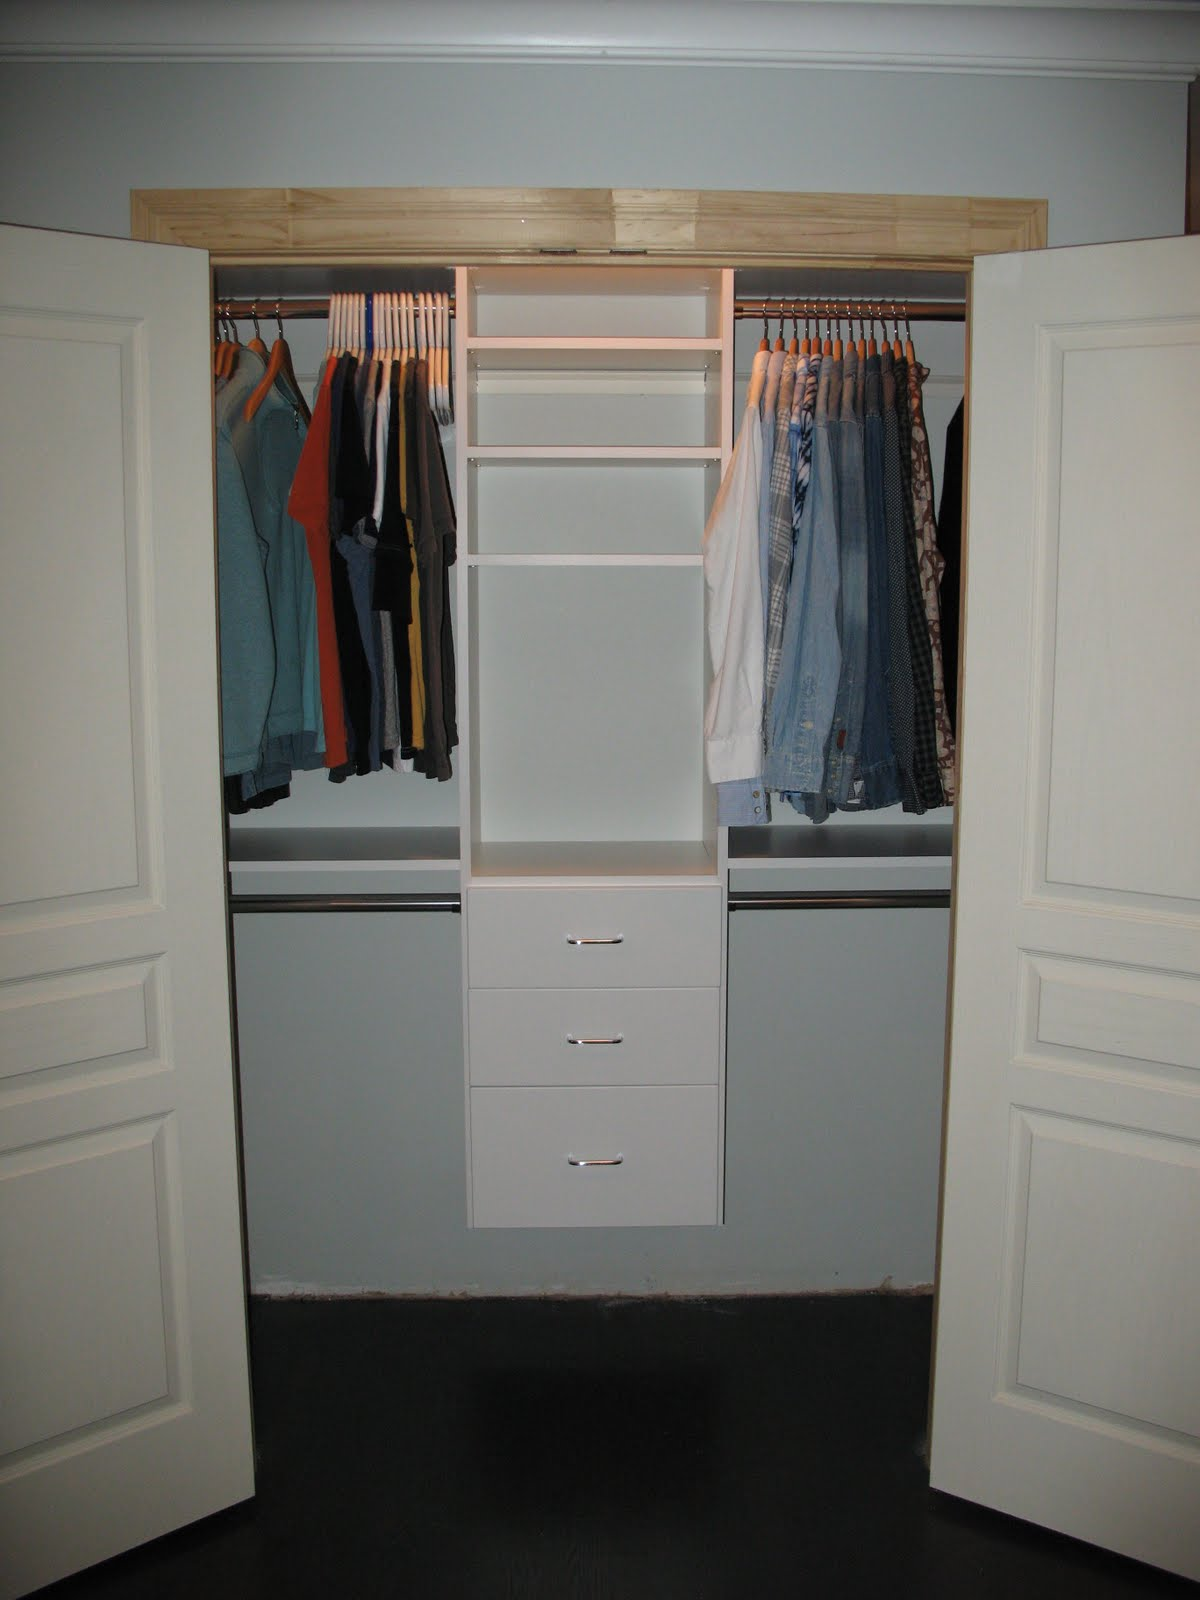 how reviews as from easy just closet easyclosetscom product easyclosets review doors ordered is about exciting midmal a itself closets com bedroom that we system the midwestern malaise